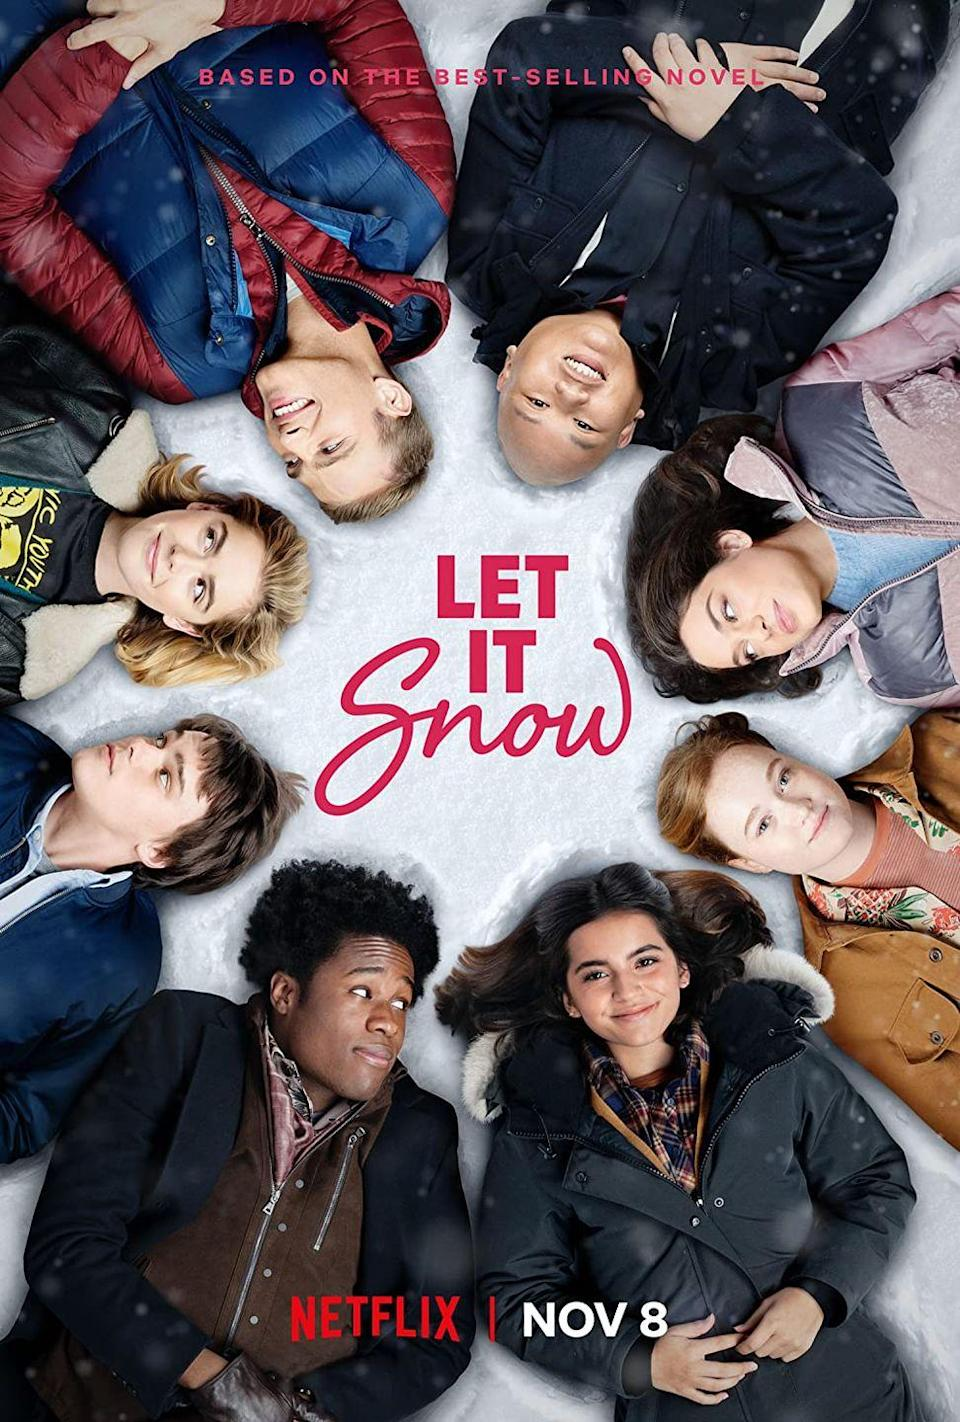 """<p>Multiple storylines of teens dealing with relationships, friends, and friends who maybe want to be more than friends come together during one fateful Christmas Eve snowstorm in <em>Let It Snow</em>. (Think <em>Love Actually</em> but with more waffles and more Kiernan Shipka.)</p><p>It's based on the novel comprised of three short stories that intersect by YA masters John Green, Maureen Johnson, and Lauren Myracle, so you can expect some seriously heartwarming and funny moments. After its 2020 release, <em>Let It Snow</em> took Twitter by storm with viewers praising its sweetest scenes, as well as its positive representation of LGBTQ+ relationships and family dynamics.</p><p><a class=""""link rapid-noclick-resp"""" href=""""https://www.netflix.com/title/80201542"""" rel=""""nofollow noopener"""" target=""""_blank"""" data-ylk=""""slk:Watch Now"""">Watch Now</a></p>"""